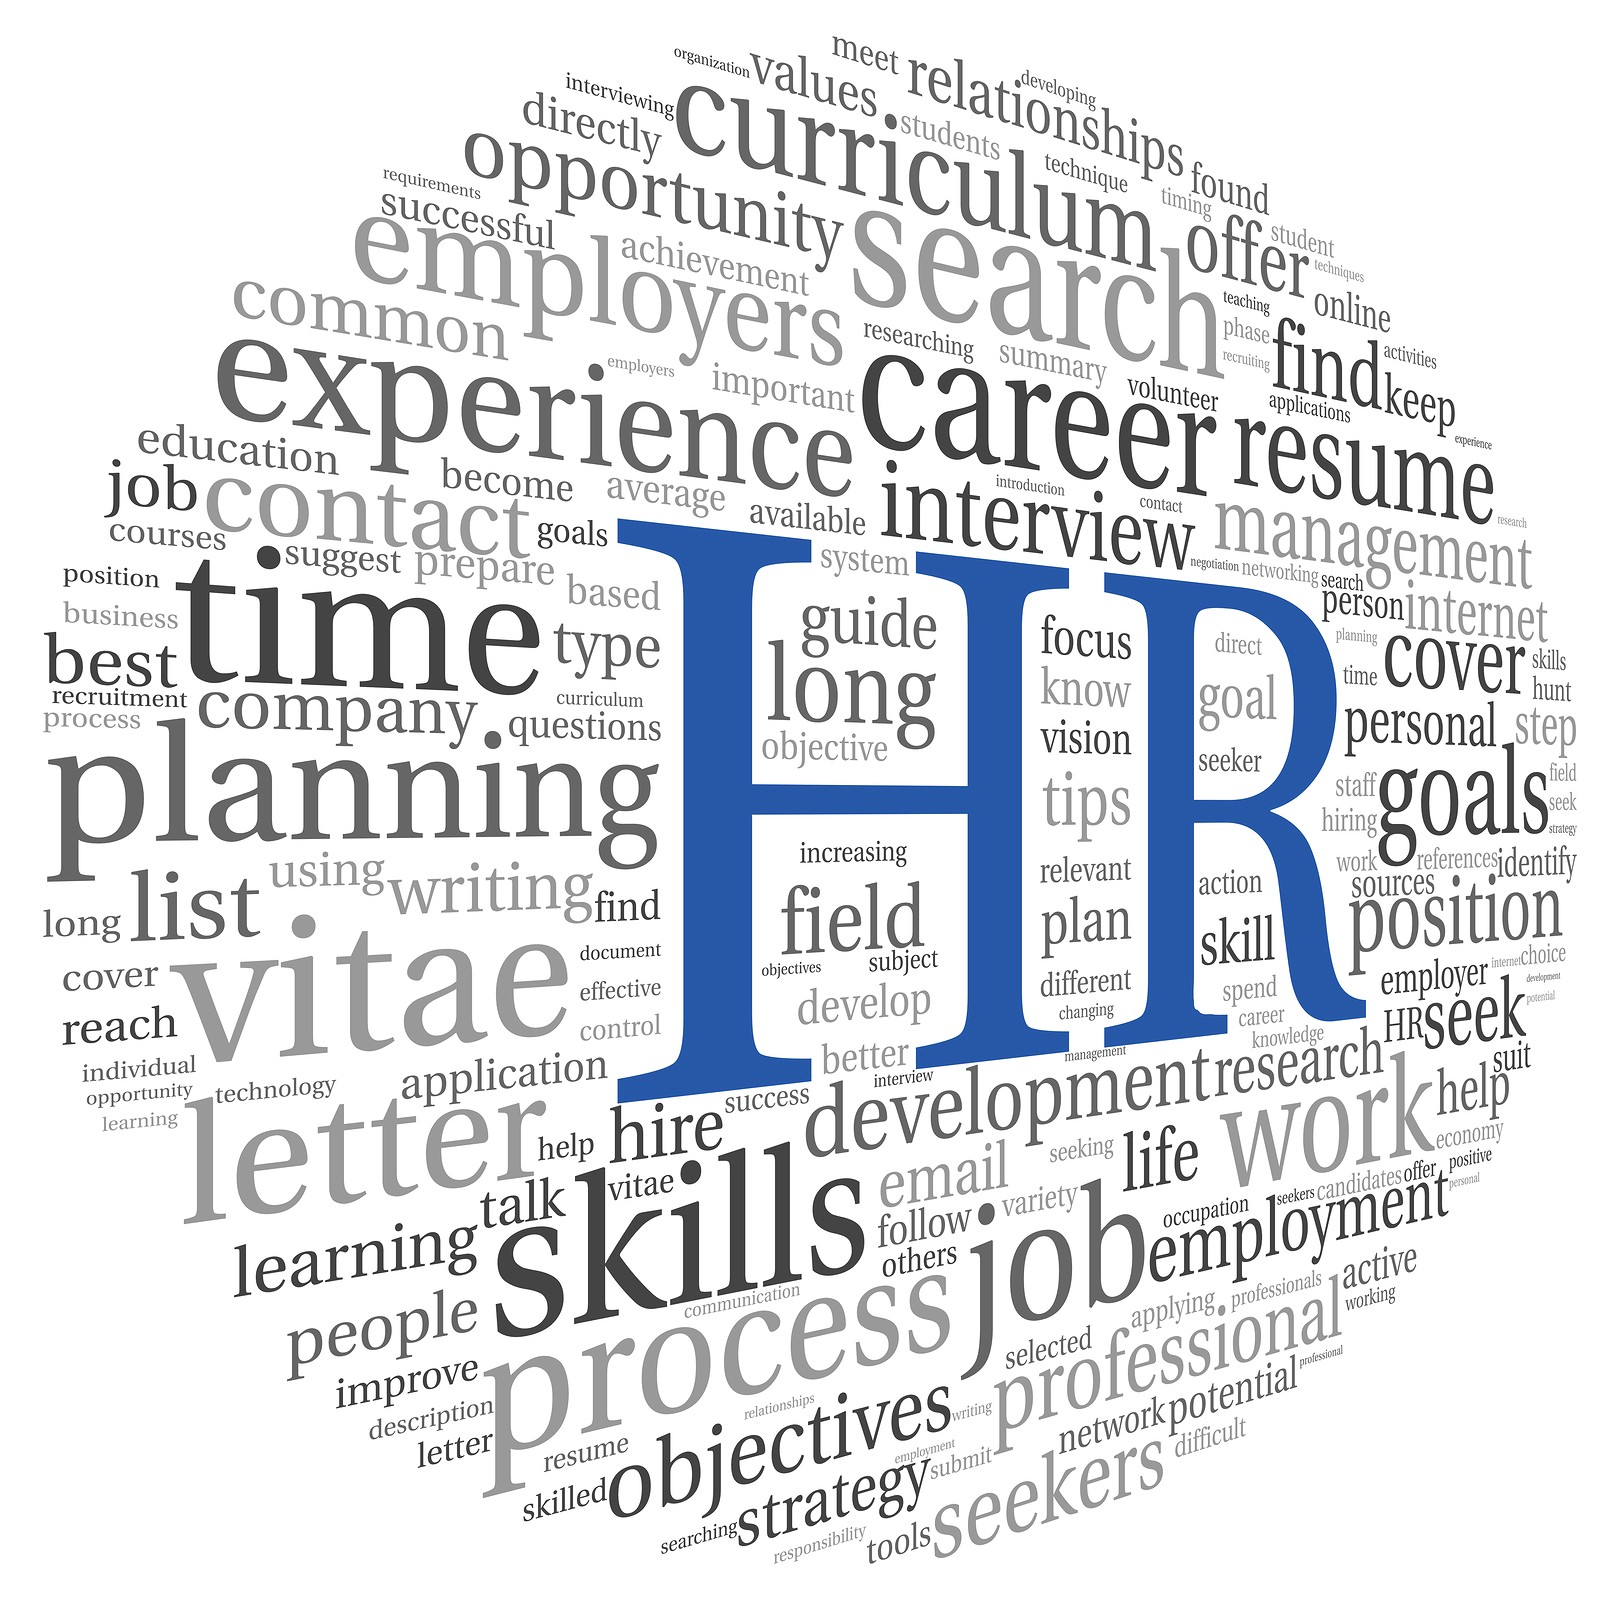 OuStaffing Agency Better Deals with Hiring Challenges!